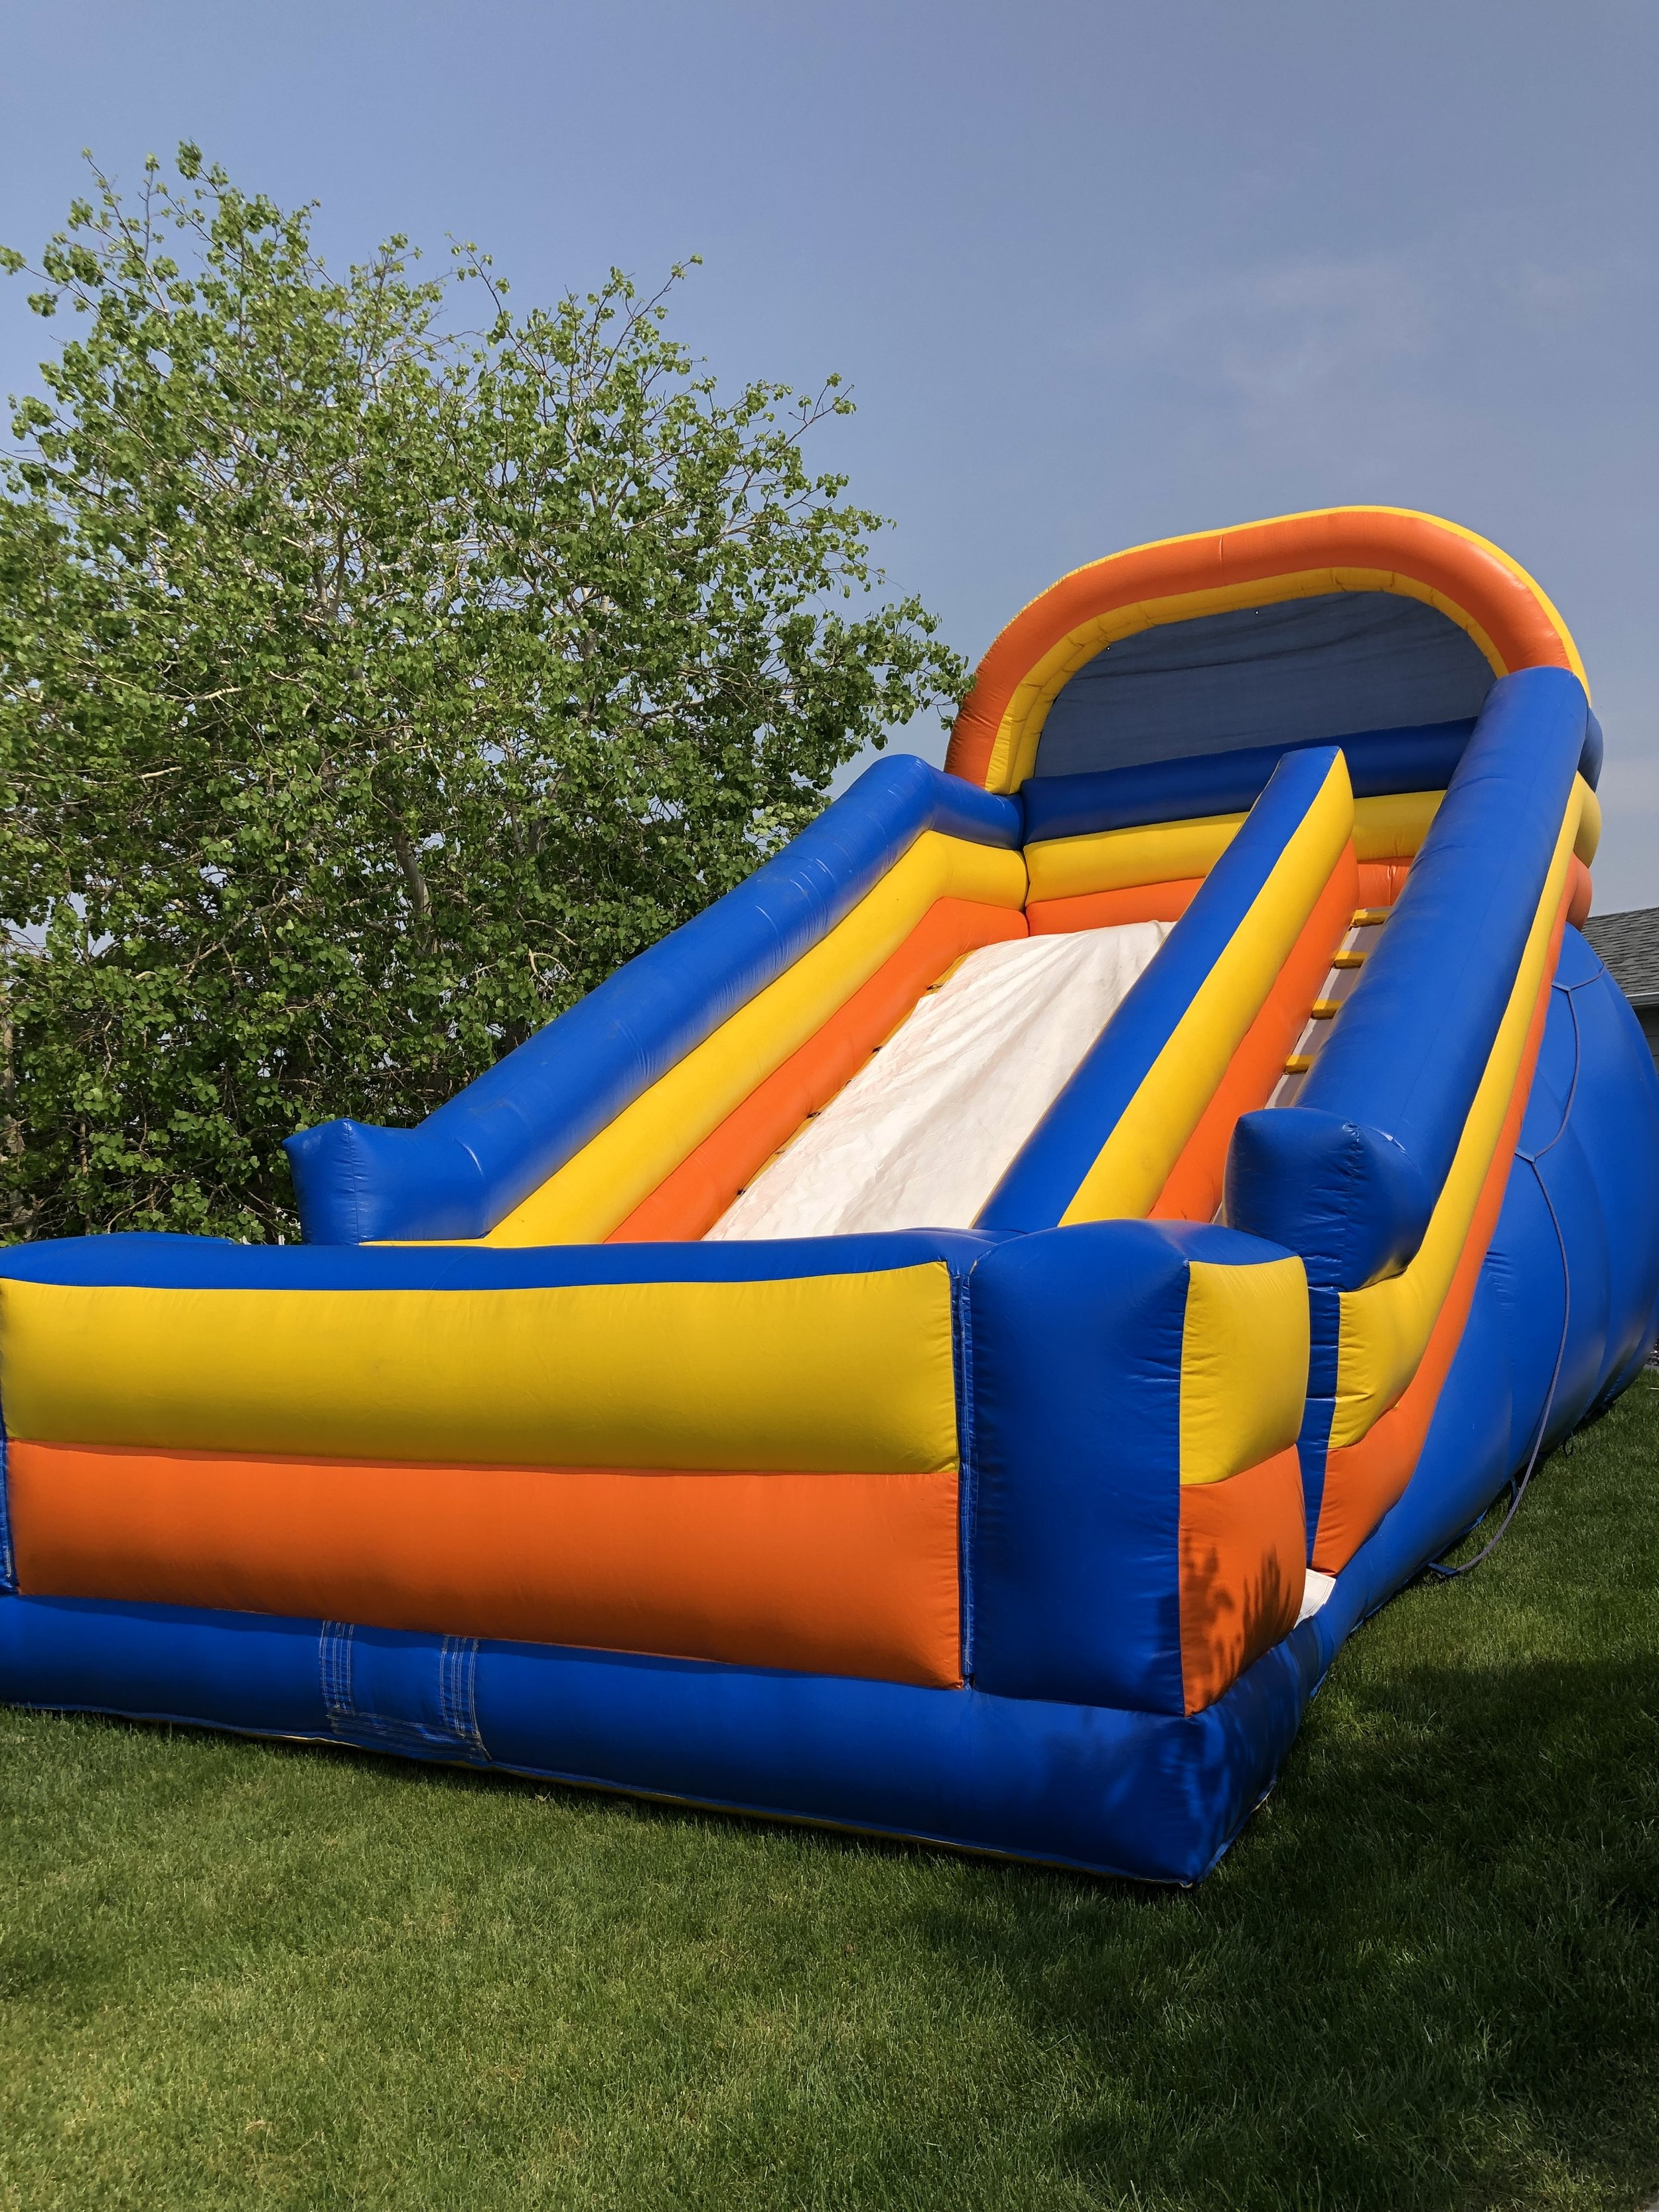 18' Silly Slide3 Hours - $3296 Hours - $379 - 30'L x 17'W x 18'H (actual size)32'L x 20'W x 20'H (size required for setup)